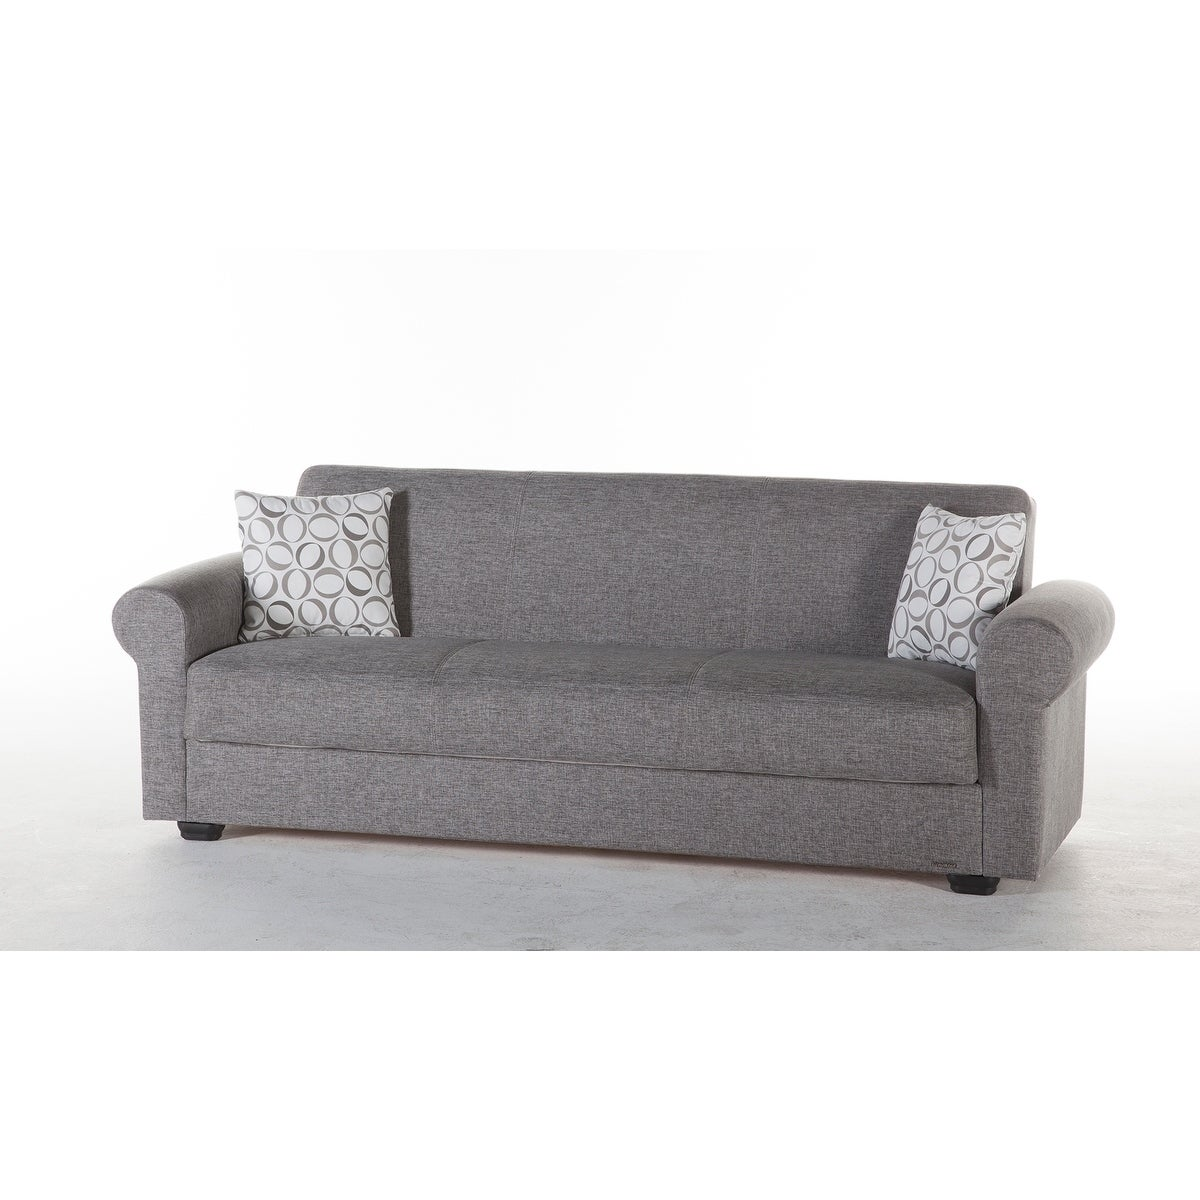 Shop Kennesaw Convertible Sofa For Living Rooms On Sale Overstock 30526926